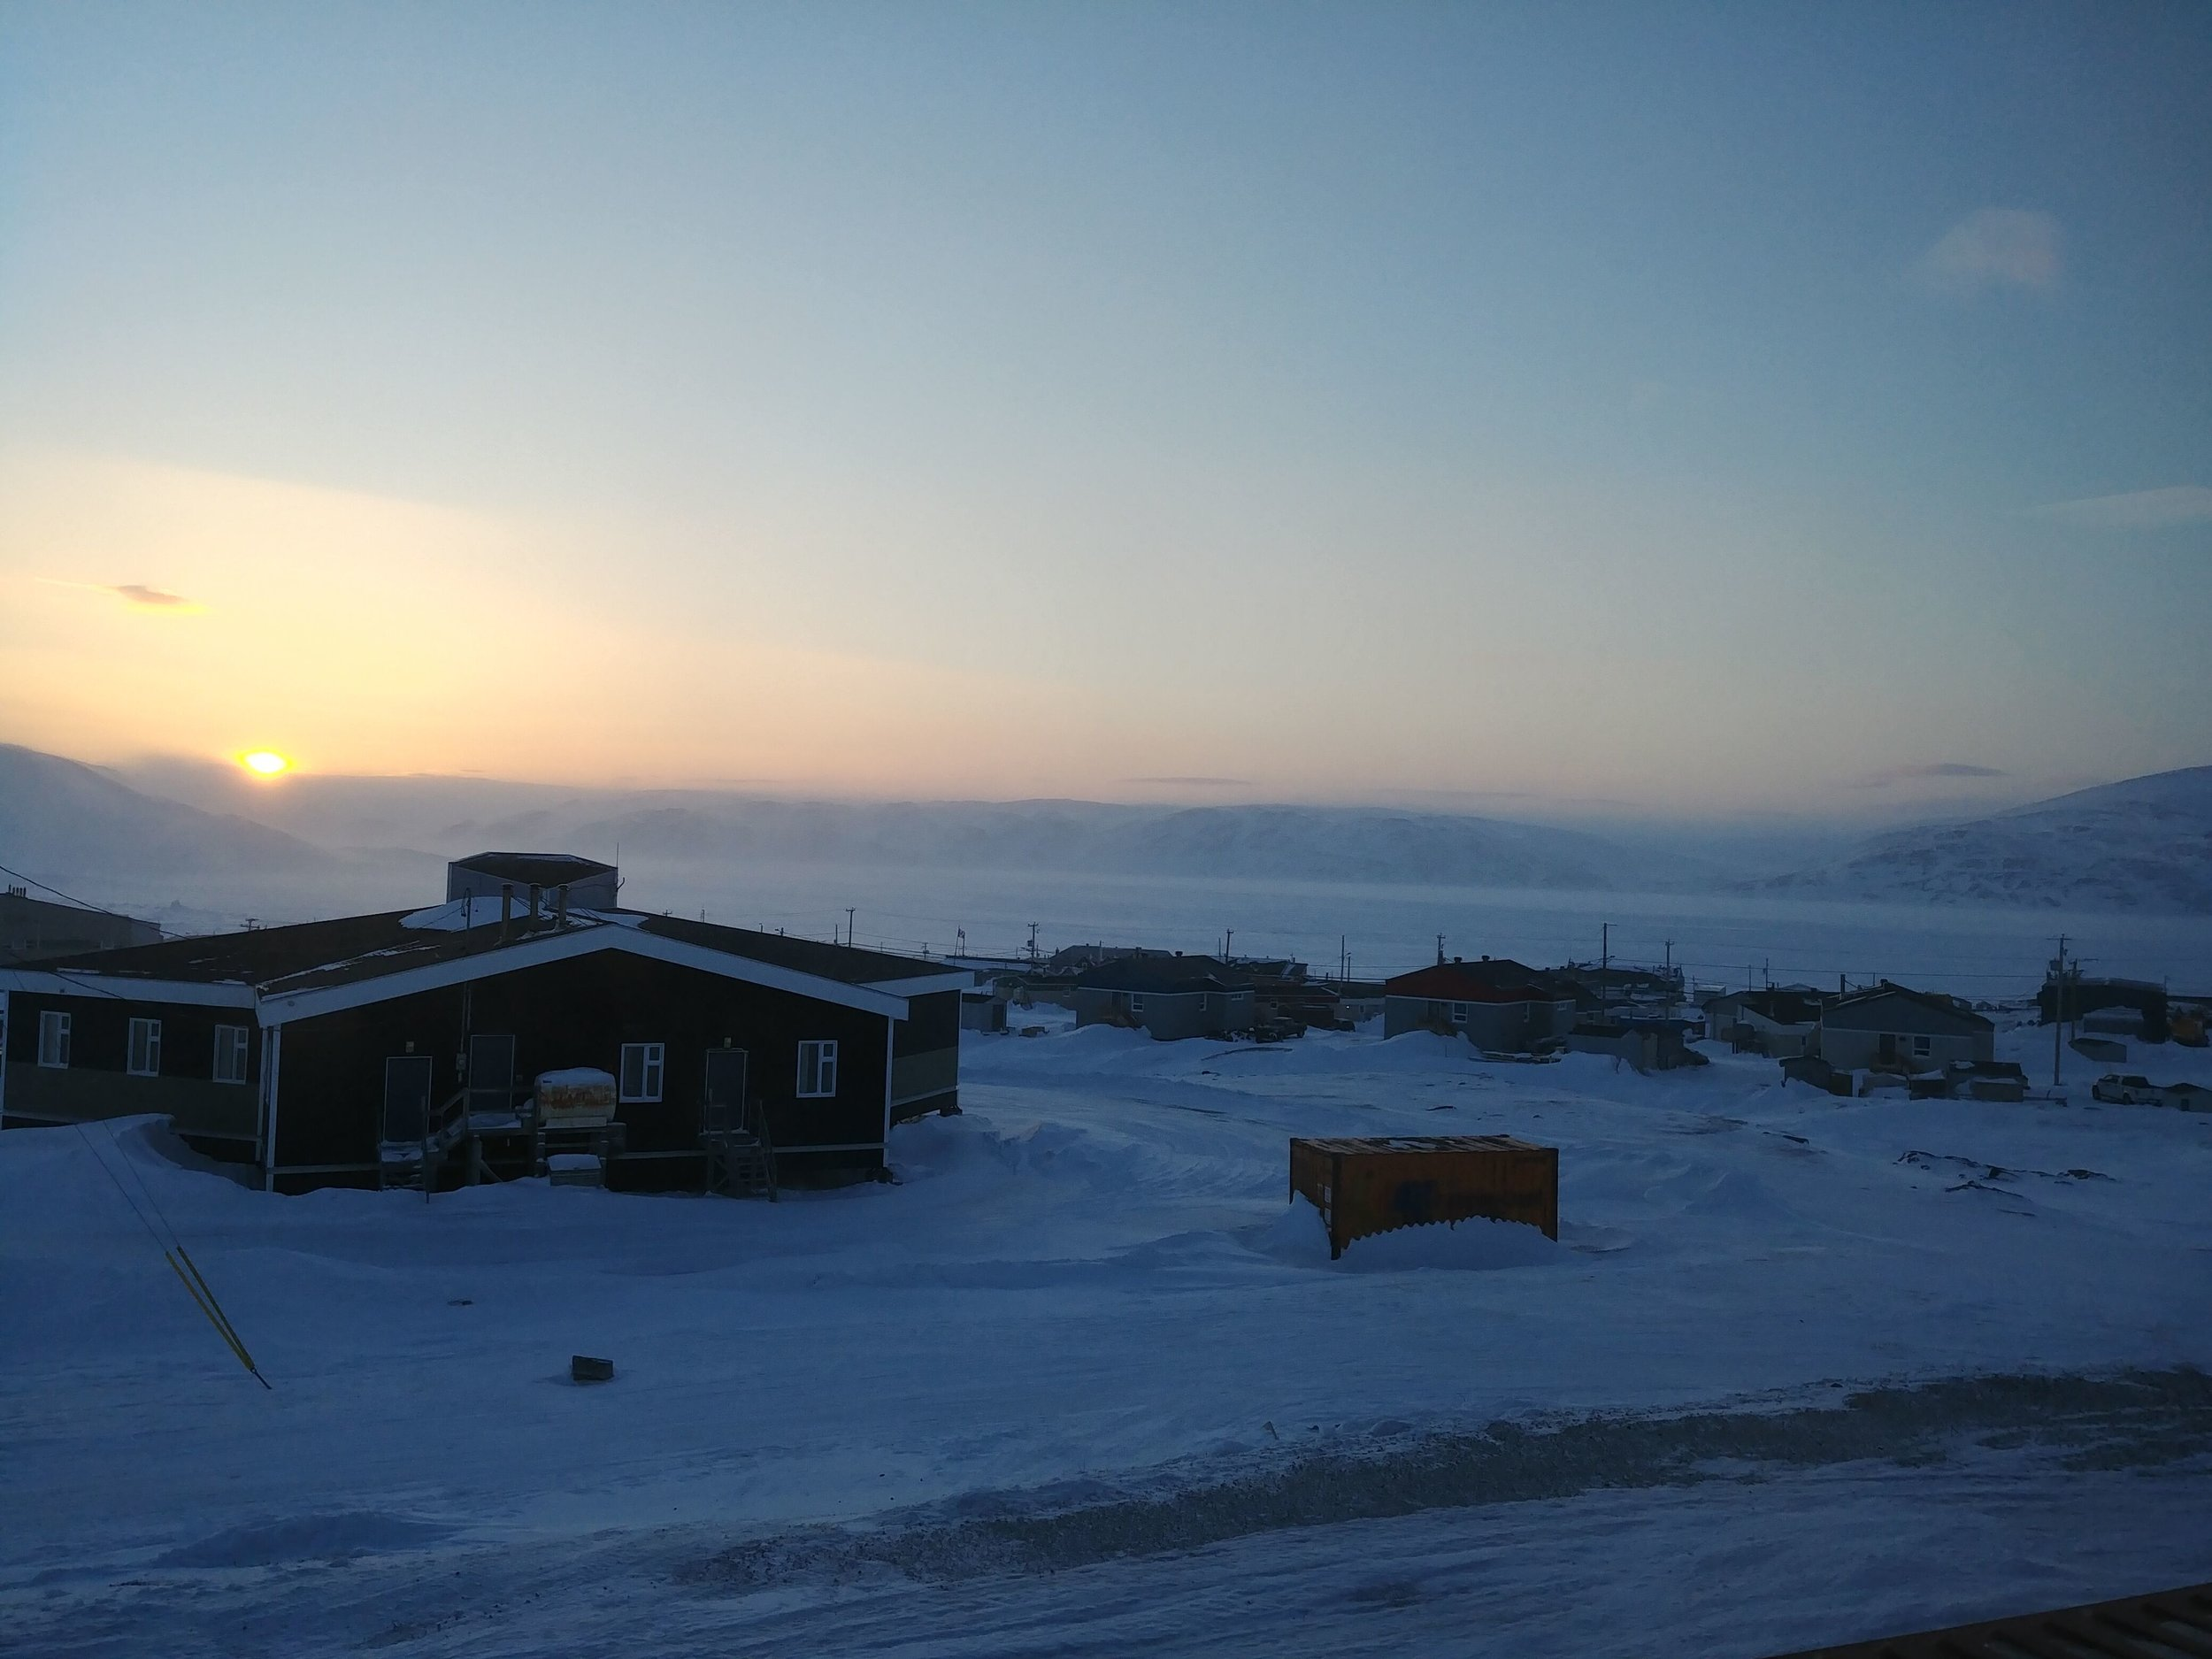 Good night Kangiqsujuaq